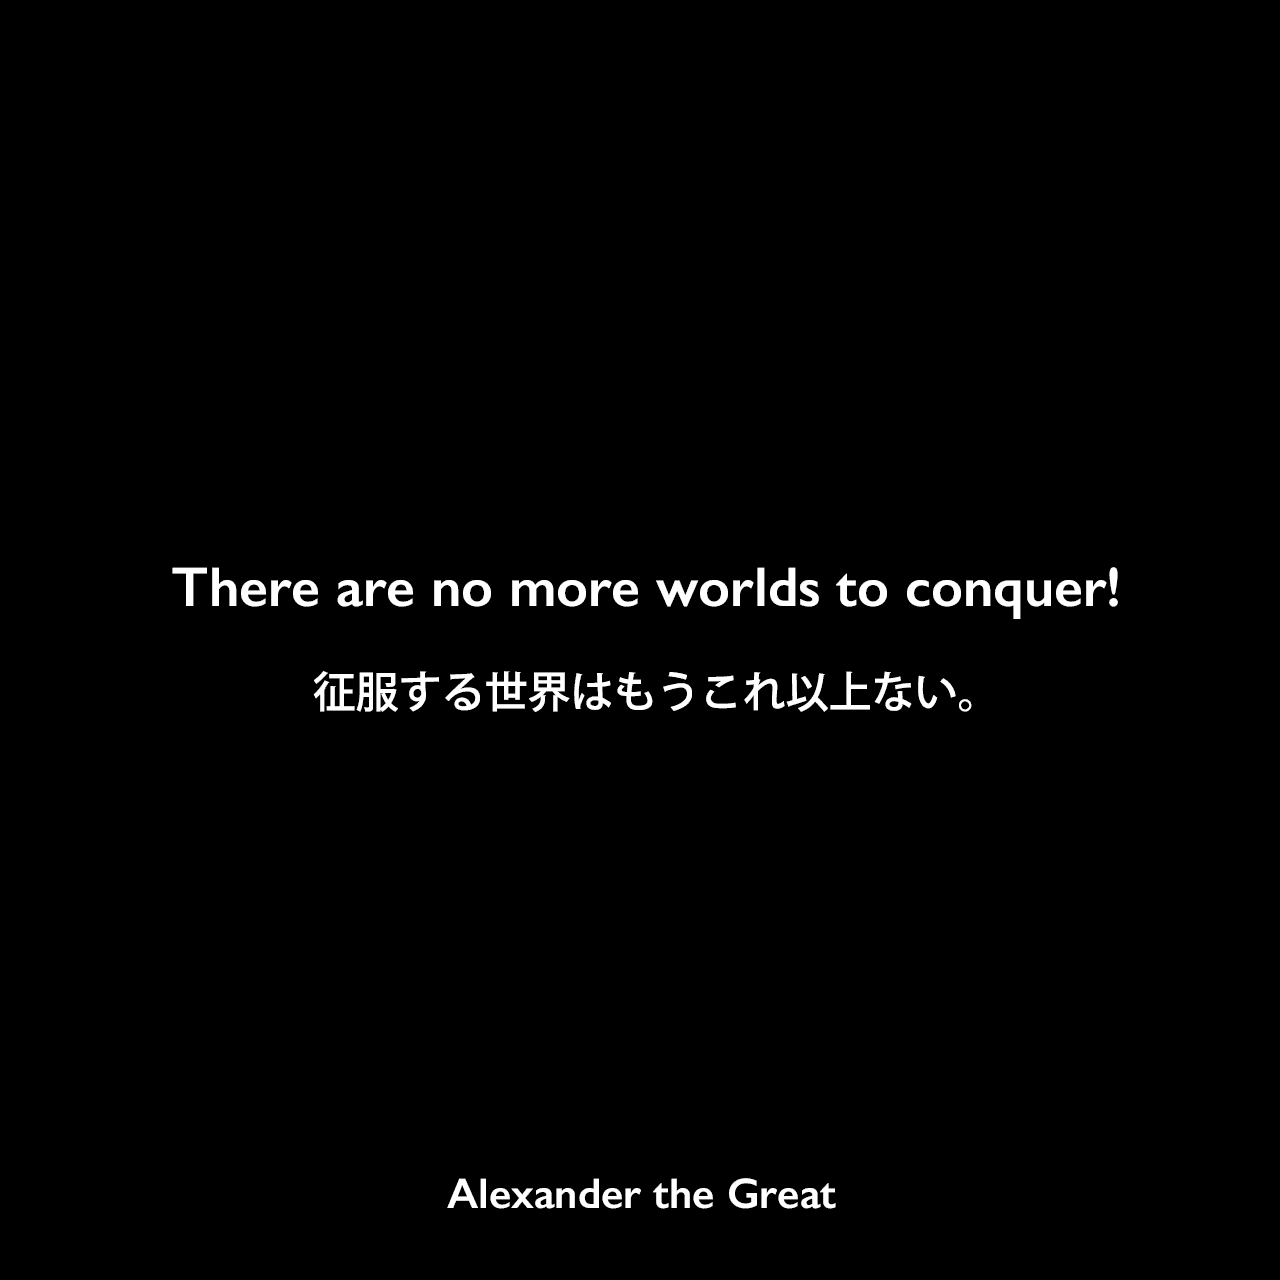 There are no more worlds to conquer!征服する世界はもうこれ以上ない。Alexander the Great